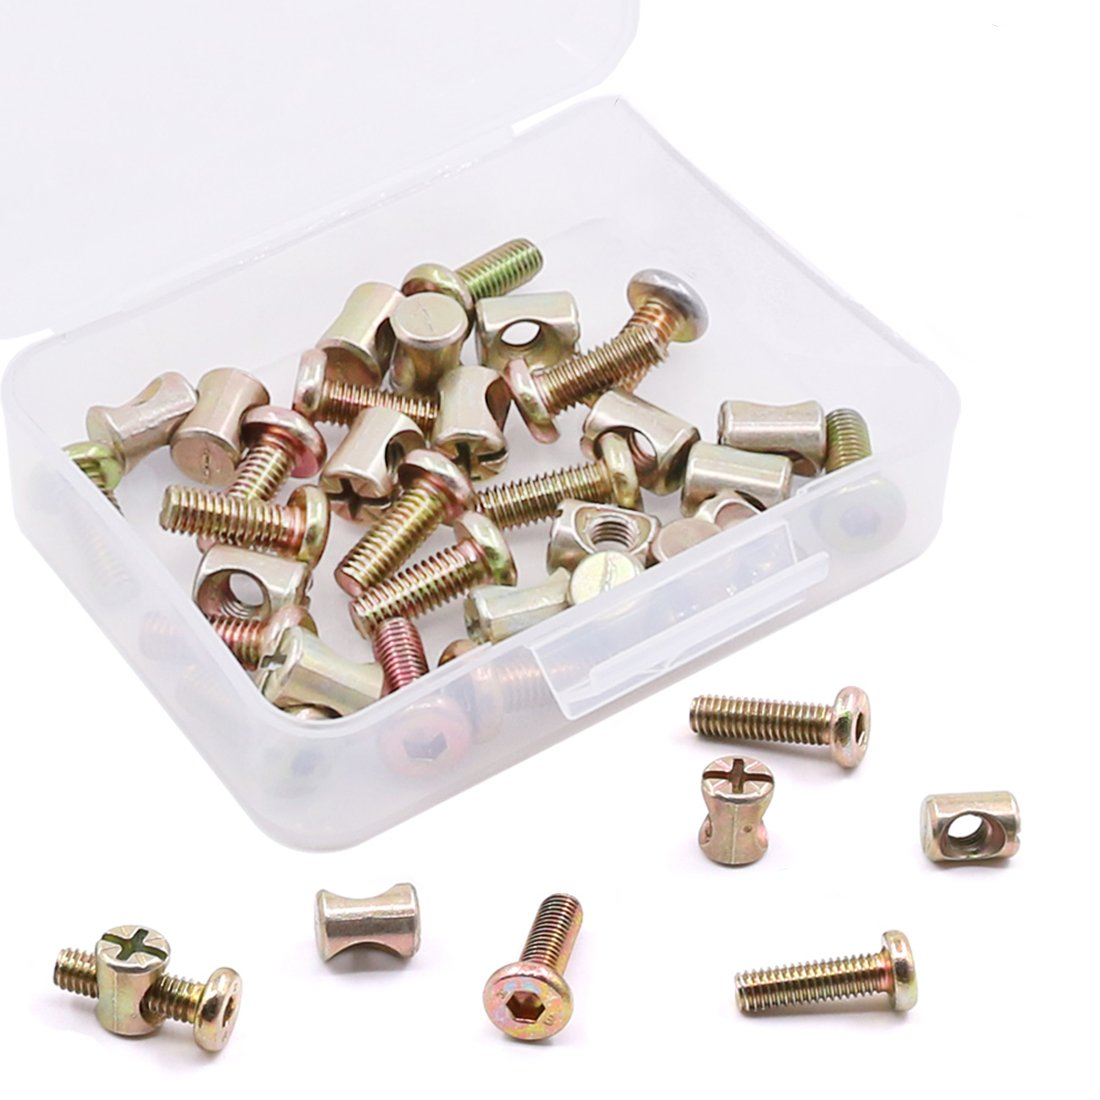 15 Pairs M6 x 40mm Zinc Plated Hex Drive Socket Cap Furniture Bolts with Barrel Nuts for Furniture Cots Beds Crib and Chairs